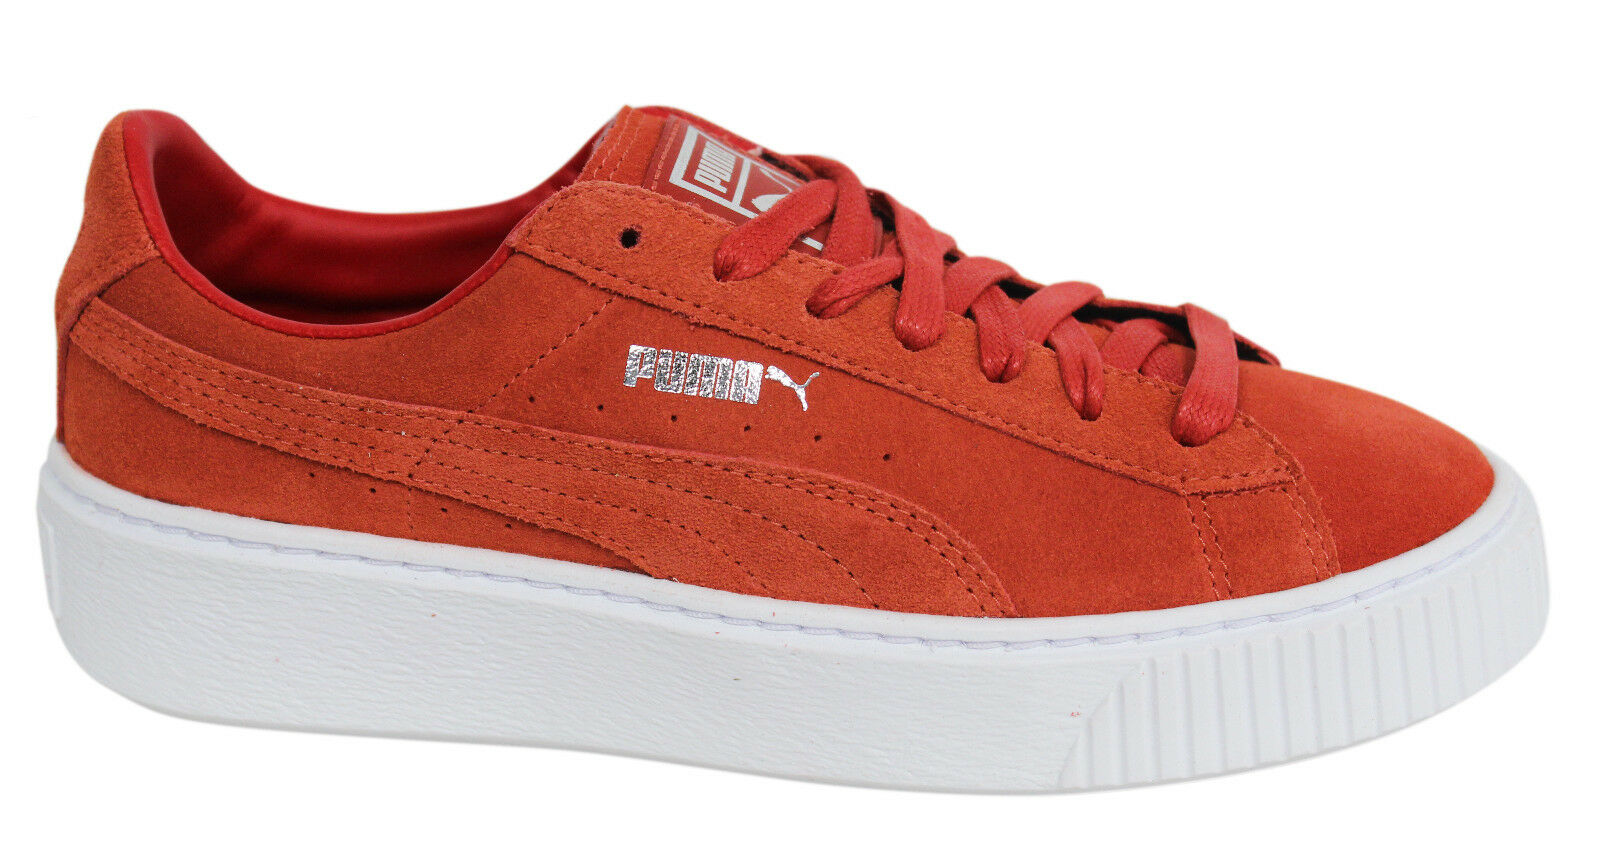 Puma Suede Platform Burnt Orange Lace Up femmes Trainers 362223 03 U2